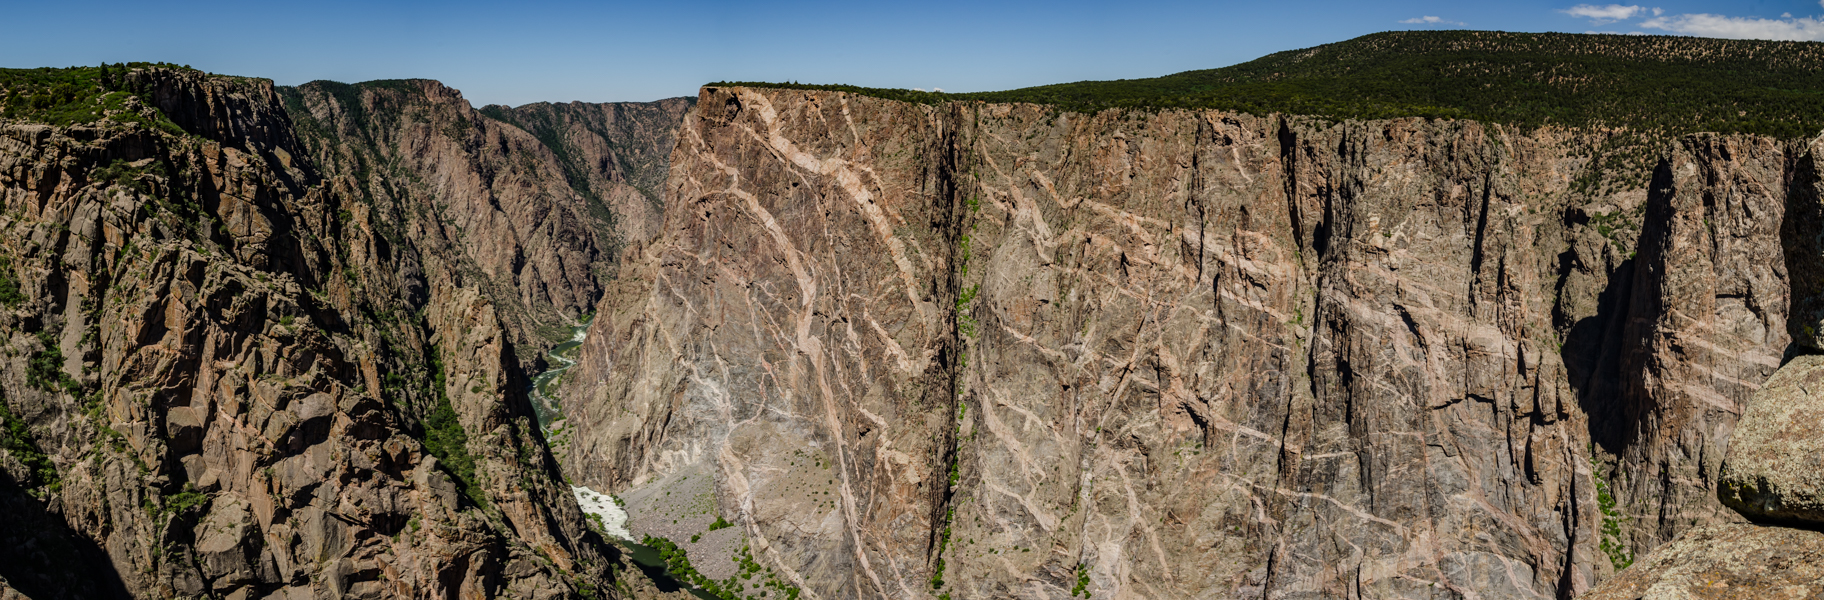 The Painted Wall from an Overlook Along the South Rim Drive